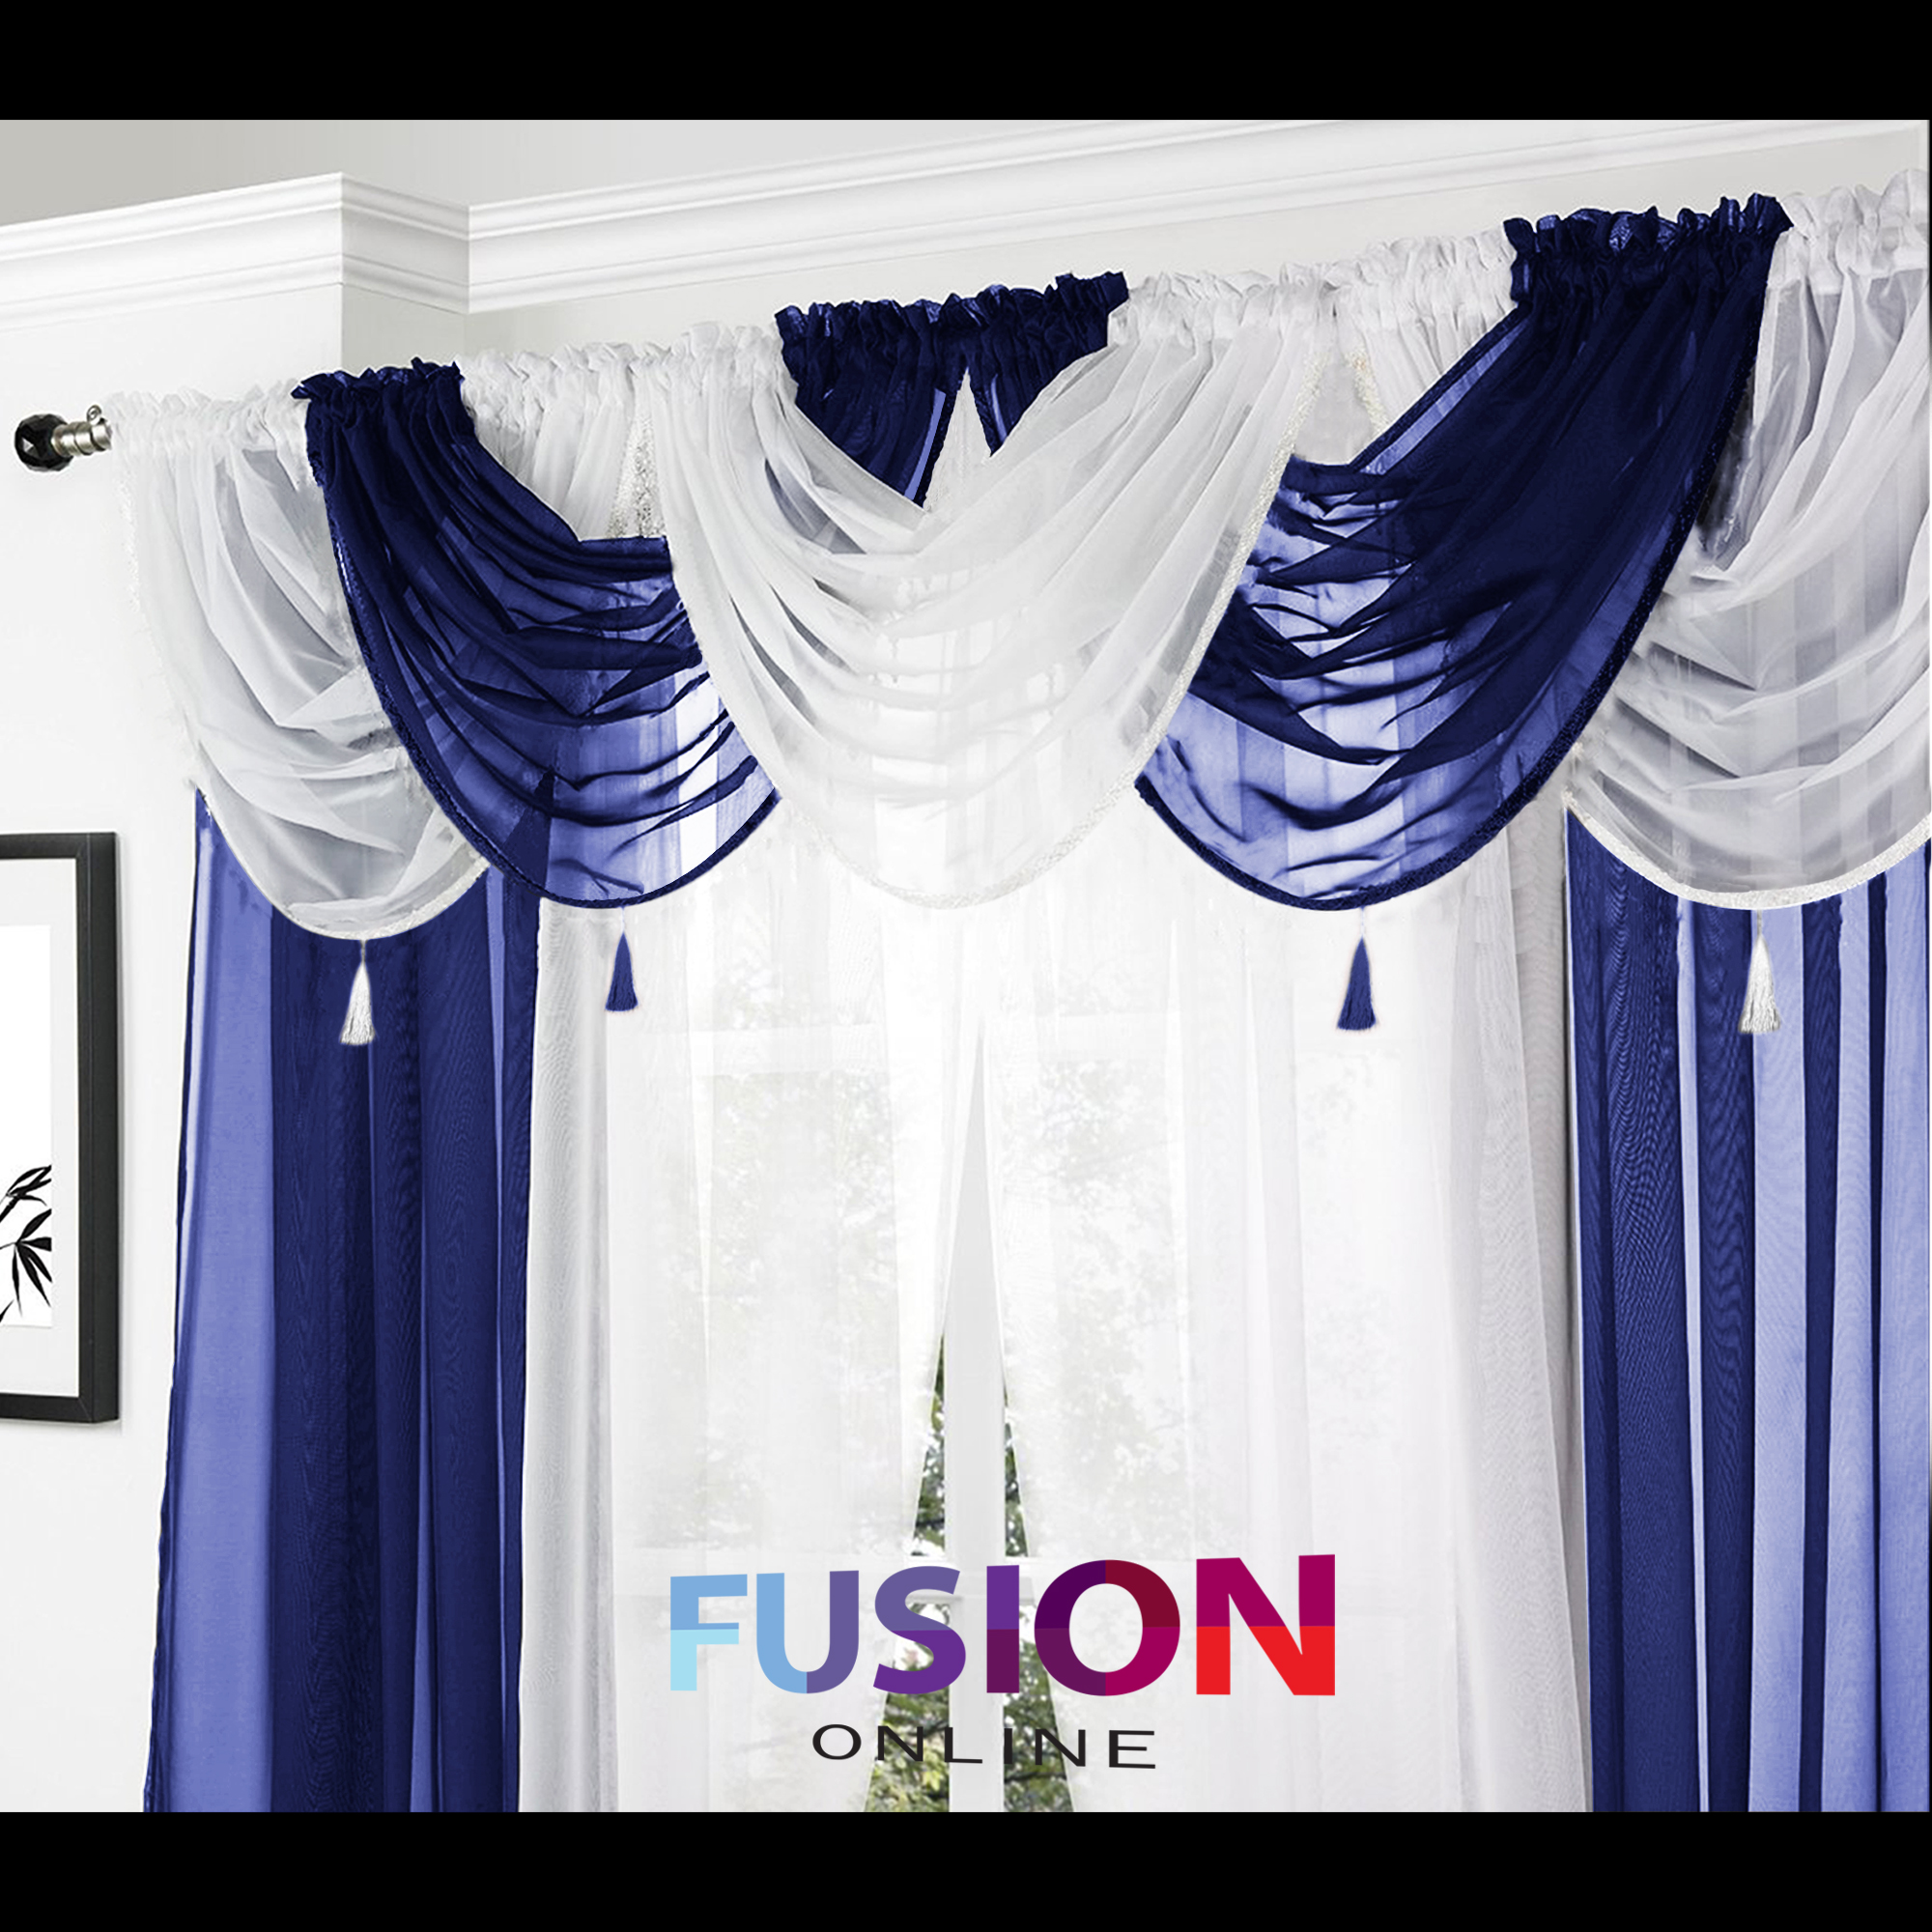 Net Curtain Swag Swags Tassle Voile Decorative Drapes